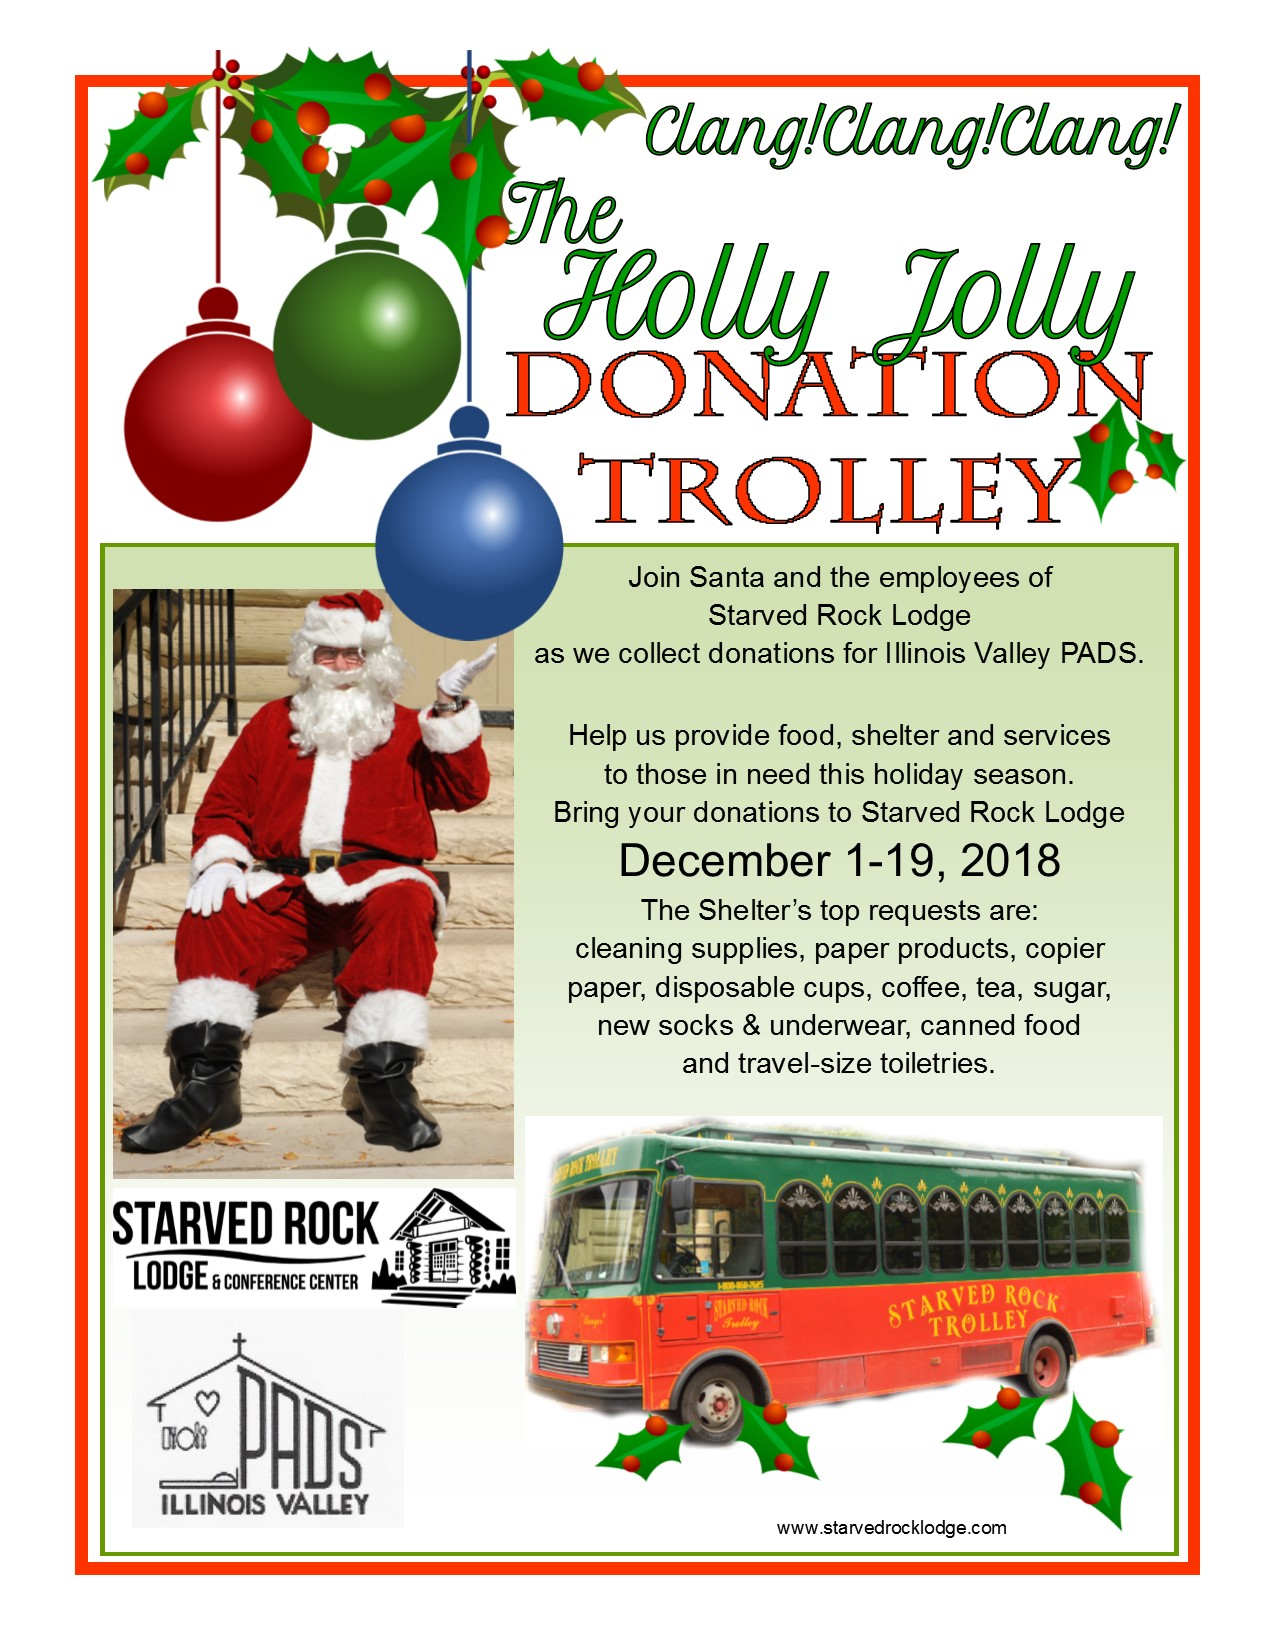 Holly Jolly Donation Trolley flyer